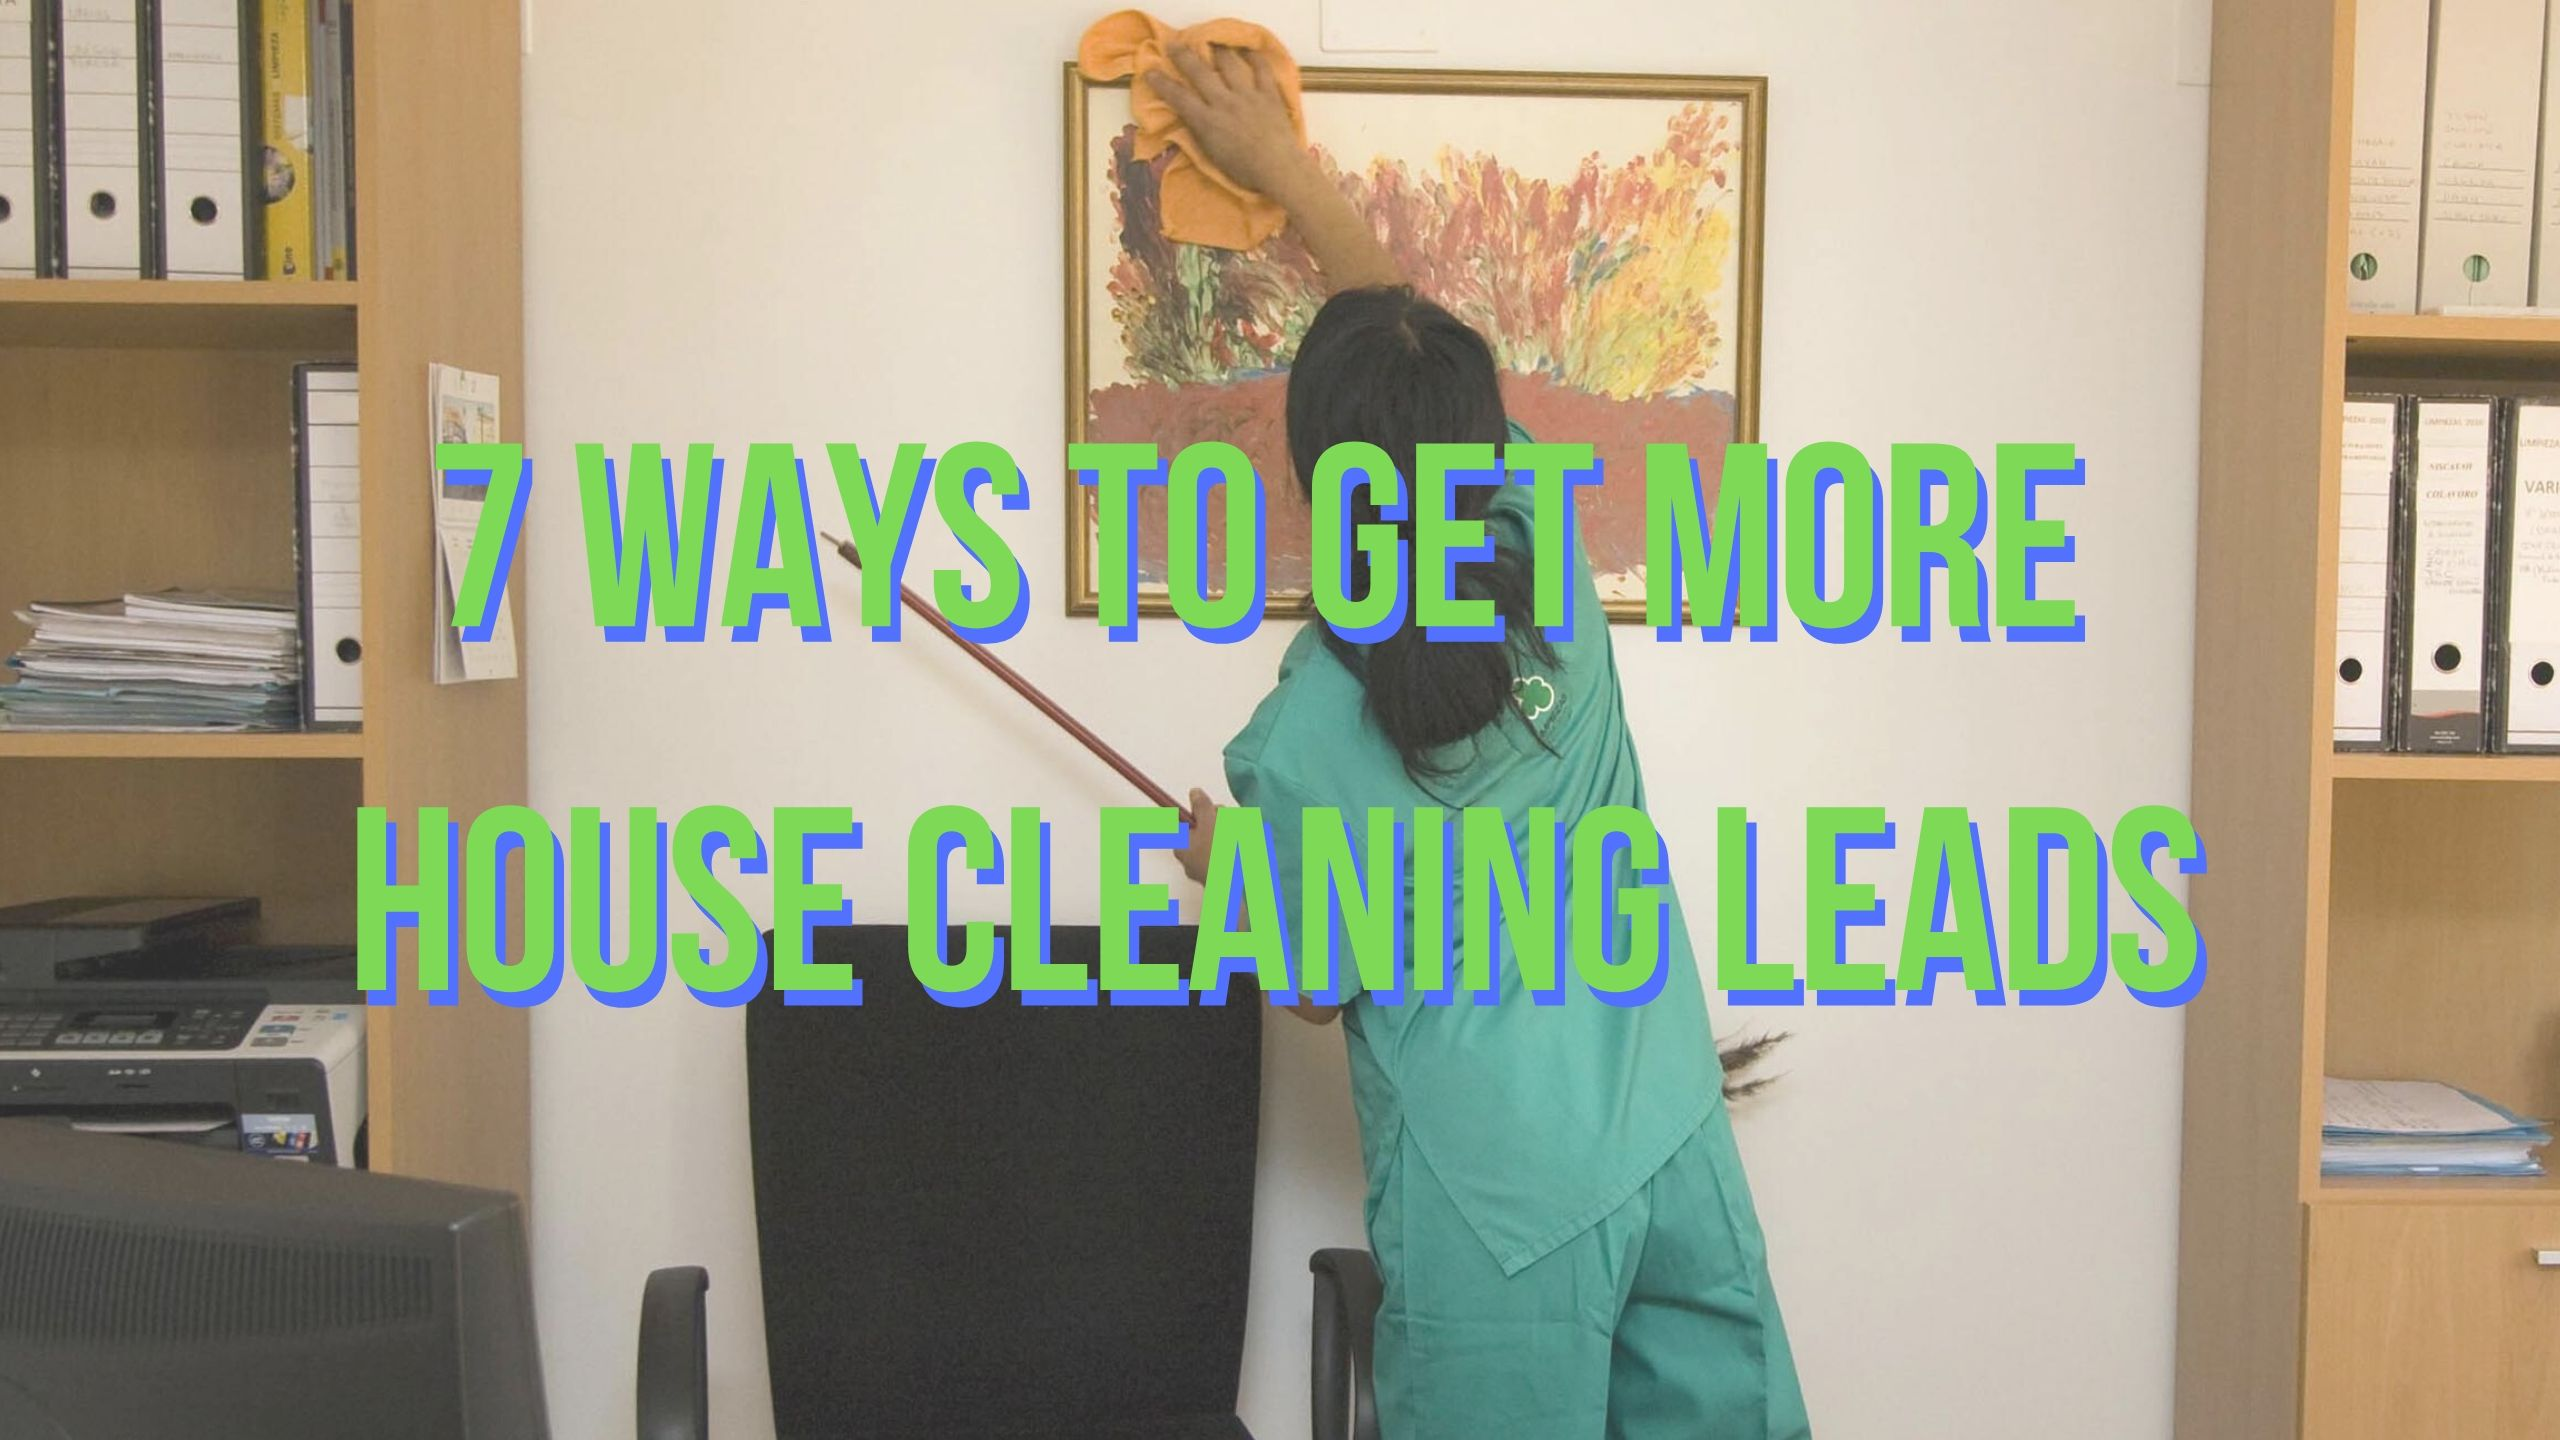 House Cleaning Leads, cleaning leads, how to get cleaning leads, how to get house cleaning leads